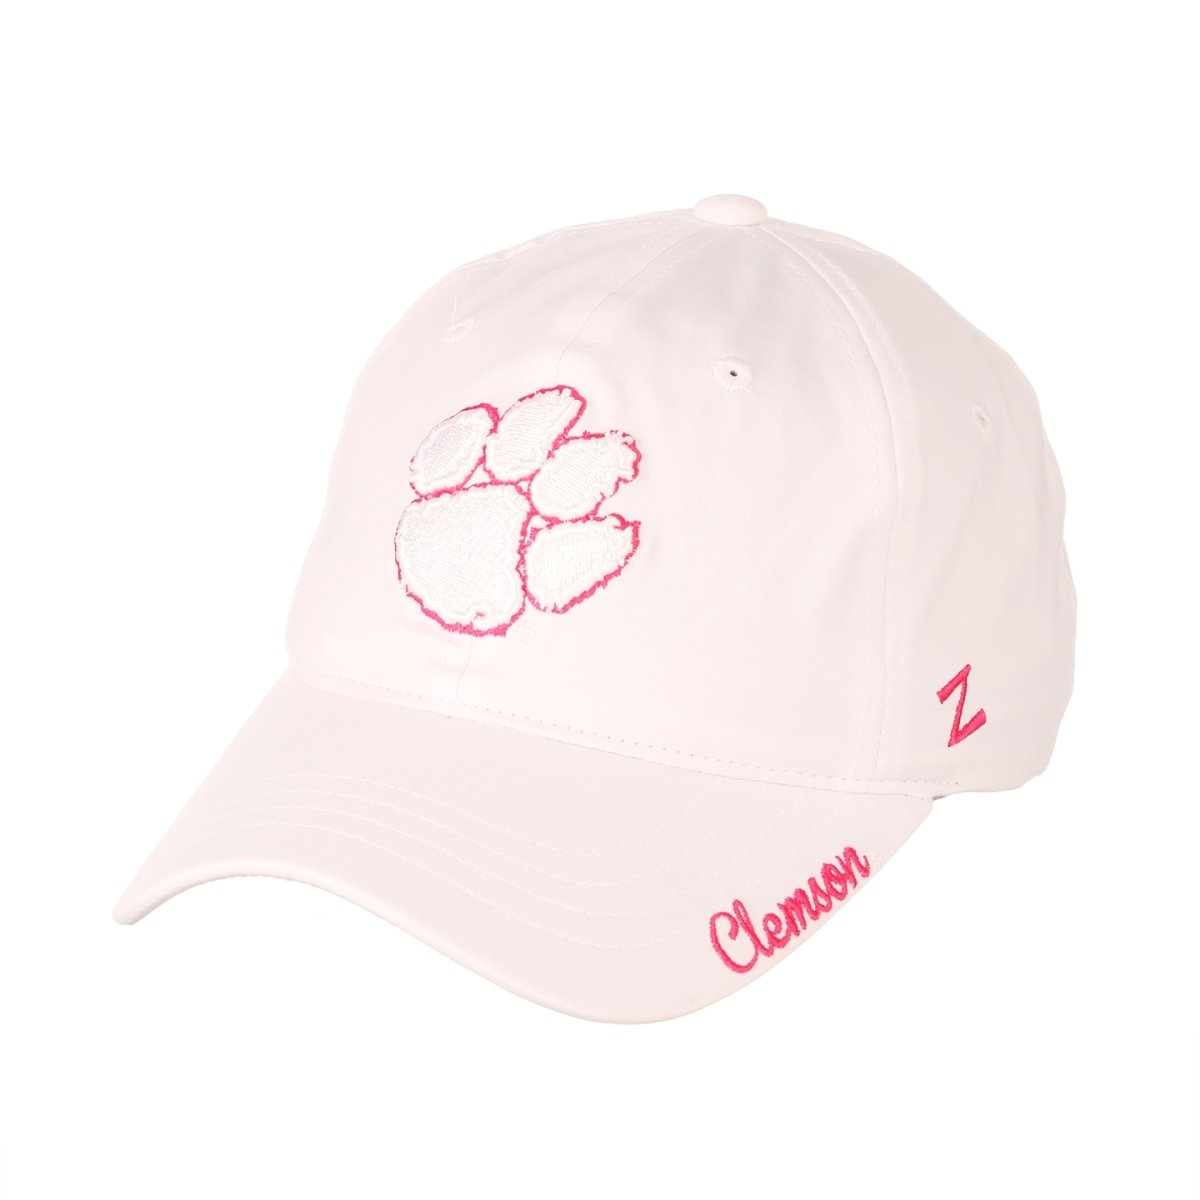 Clemson Tigers Spade Baseball Cap With White Paw Outlined in Pink Clemson Script - White - Mr. Knickerbocker